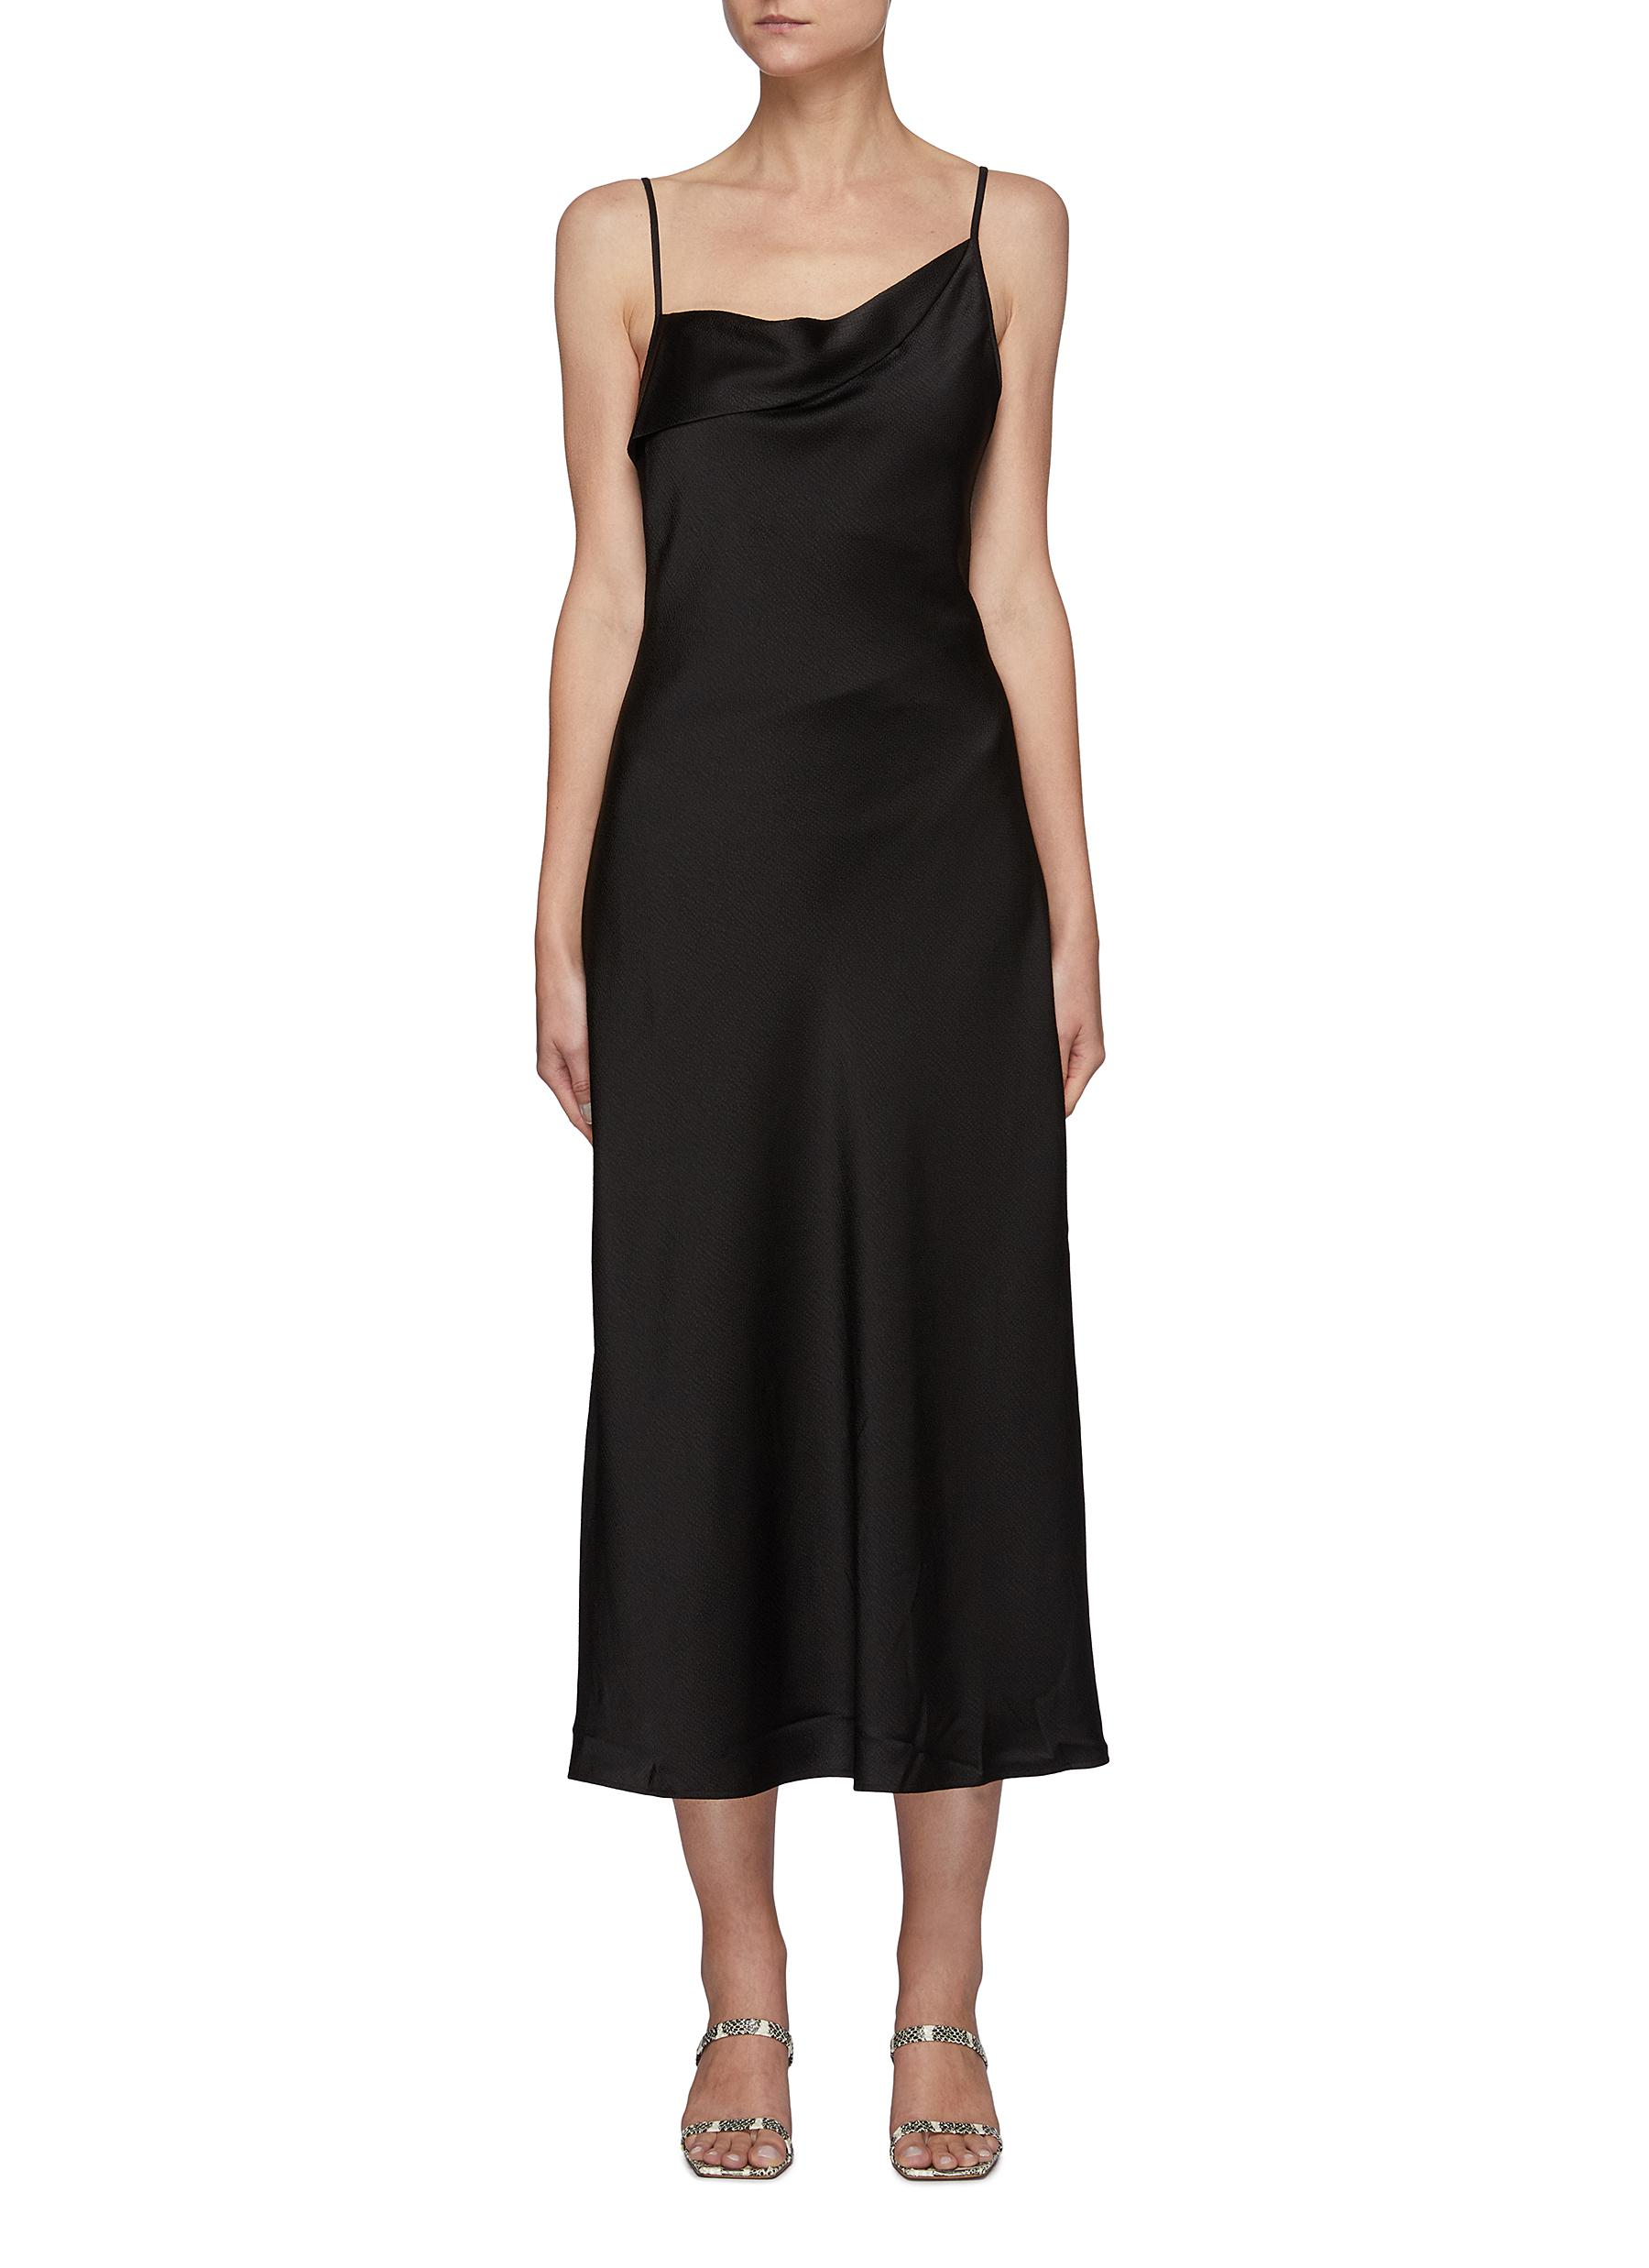 What You Do' Ruched Neck Slip Dress